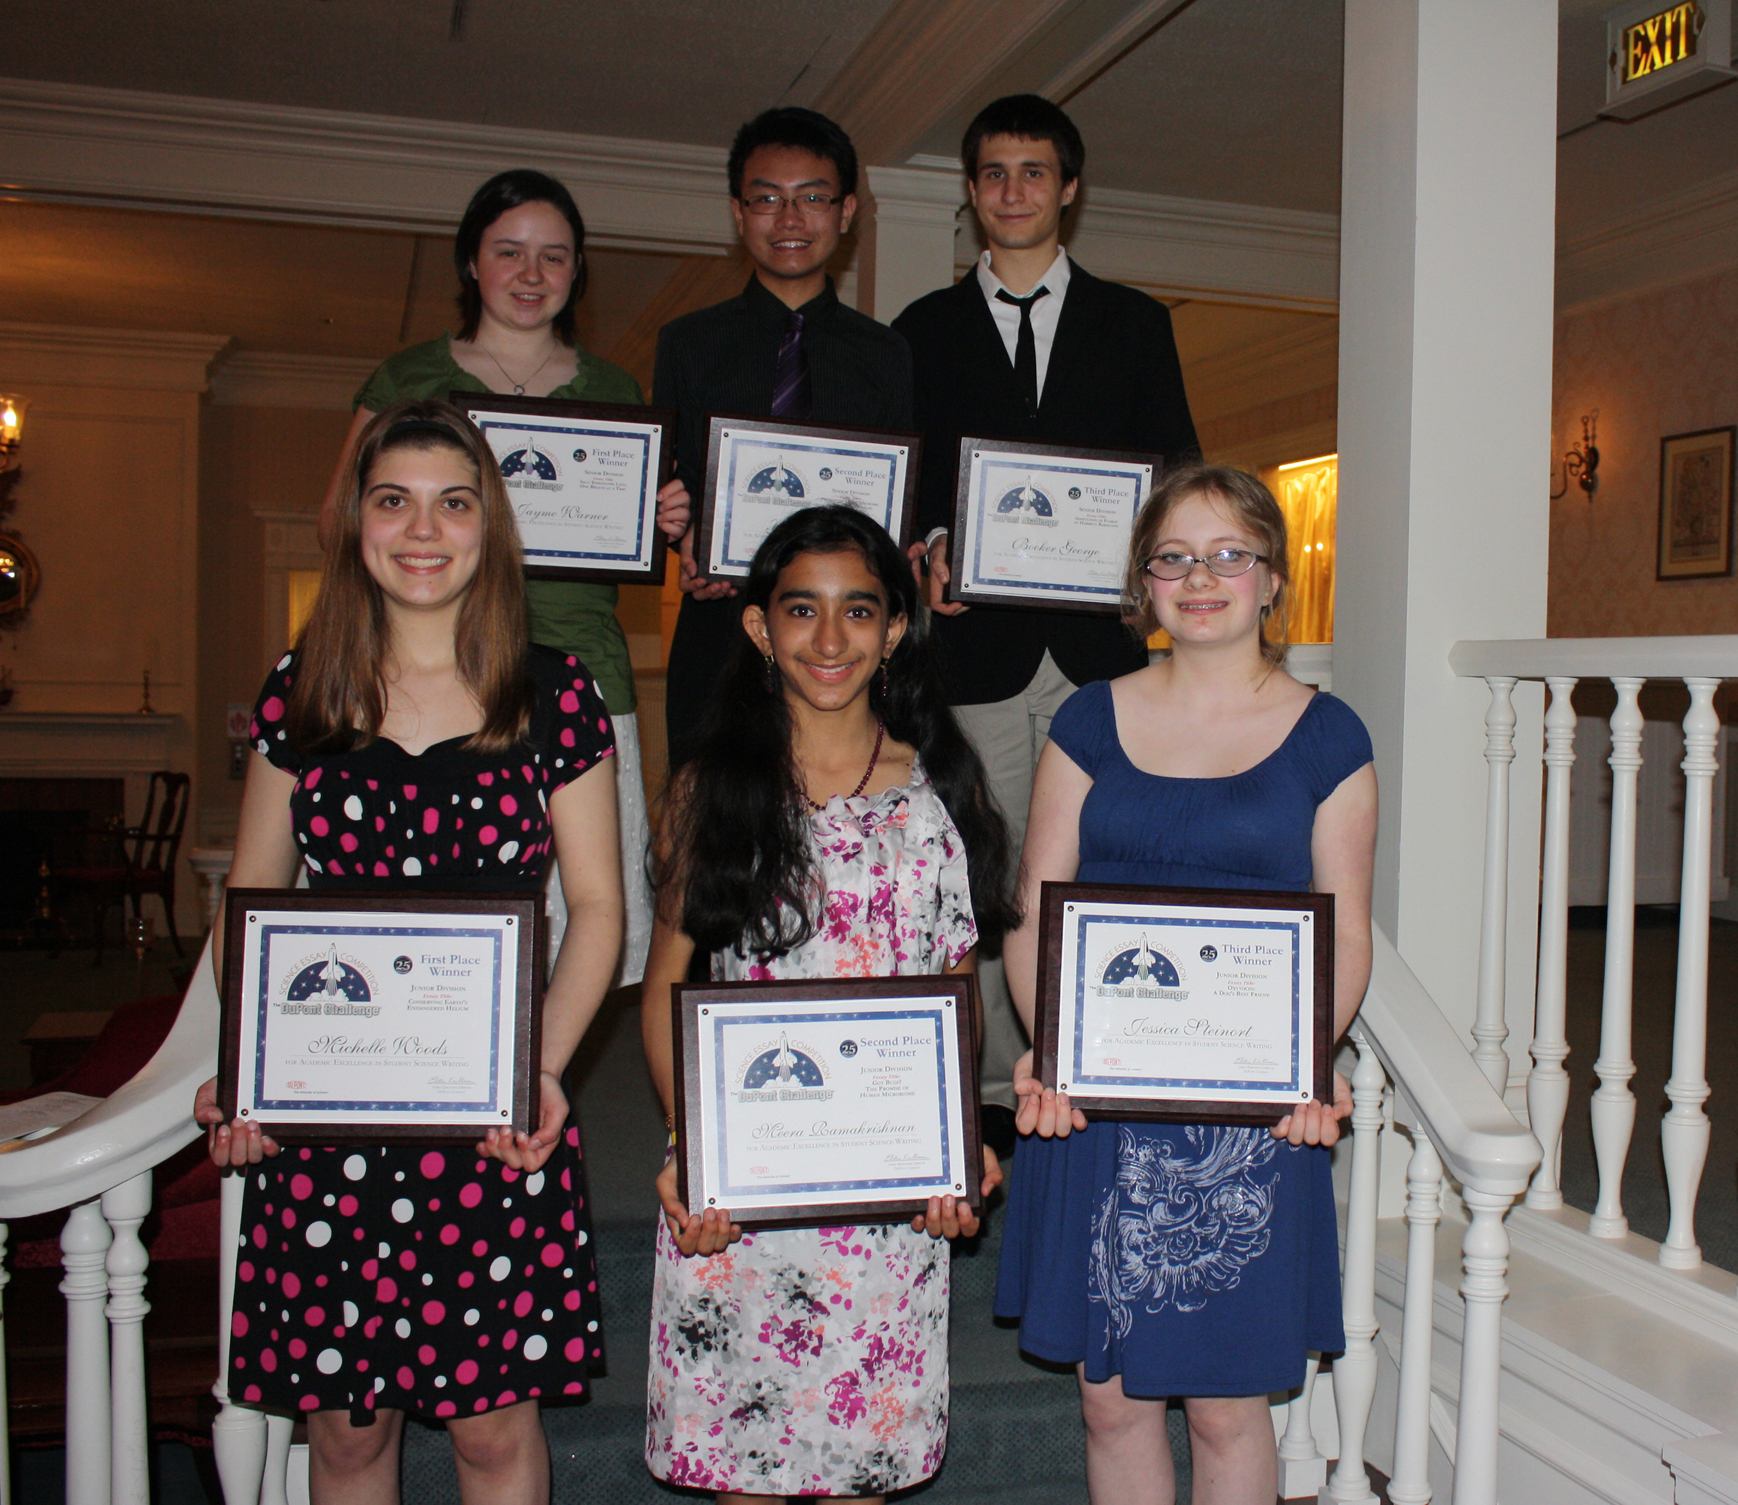 Indian American Youths Named 2014 DuPont Challenge Winners - India ...